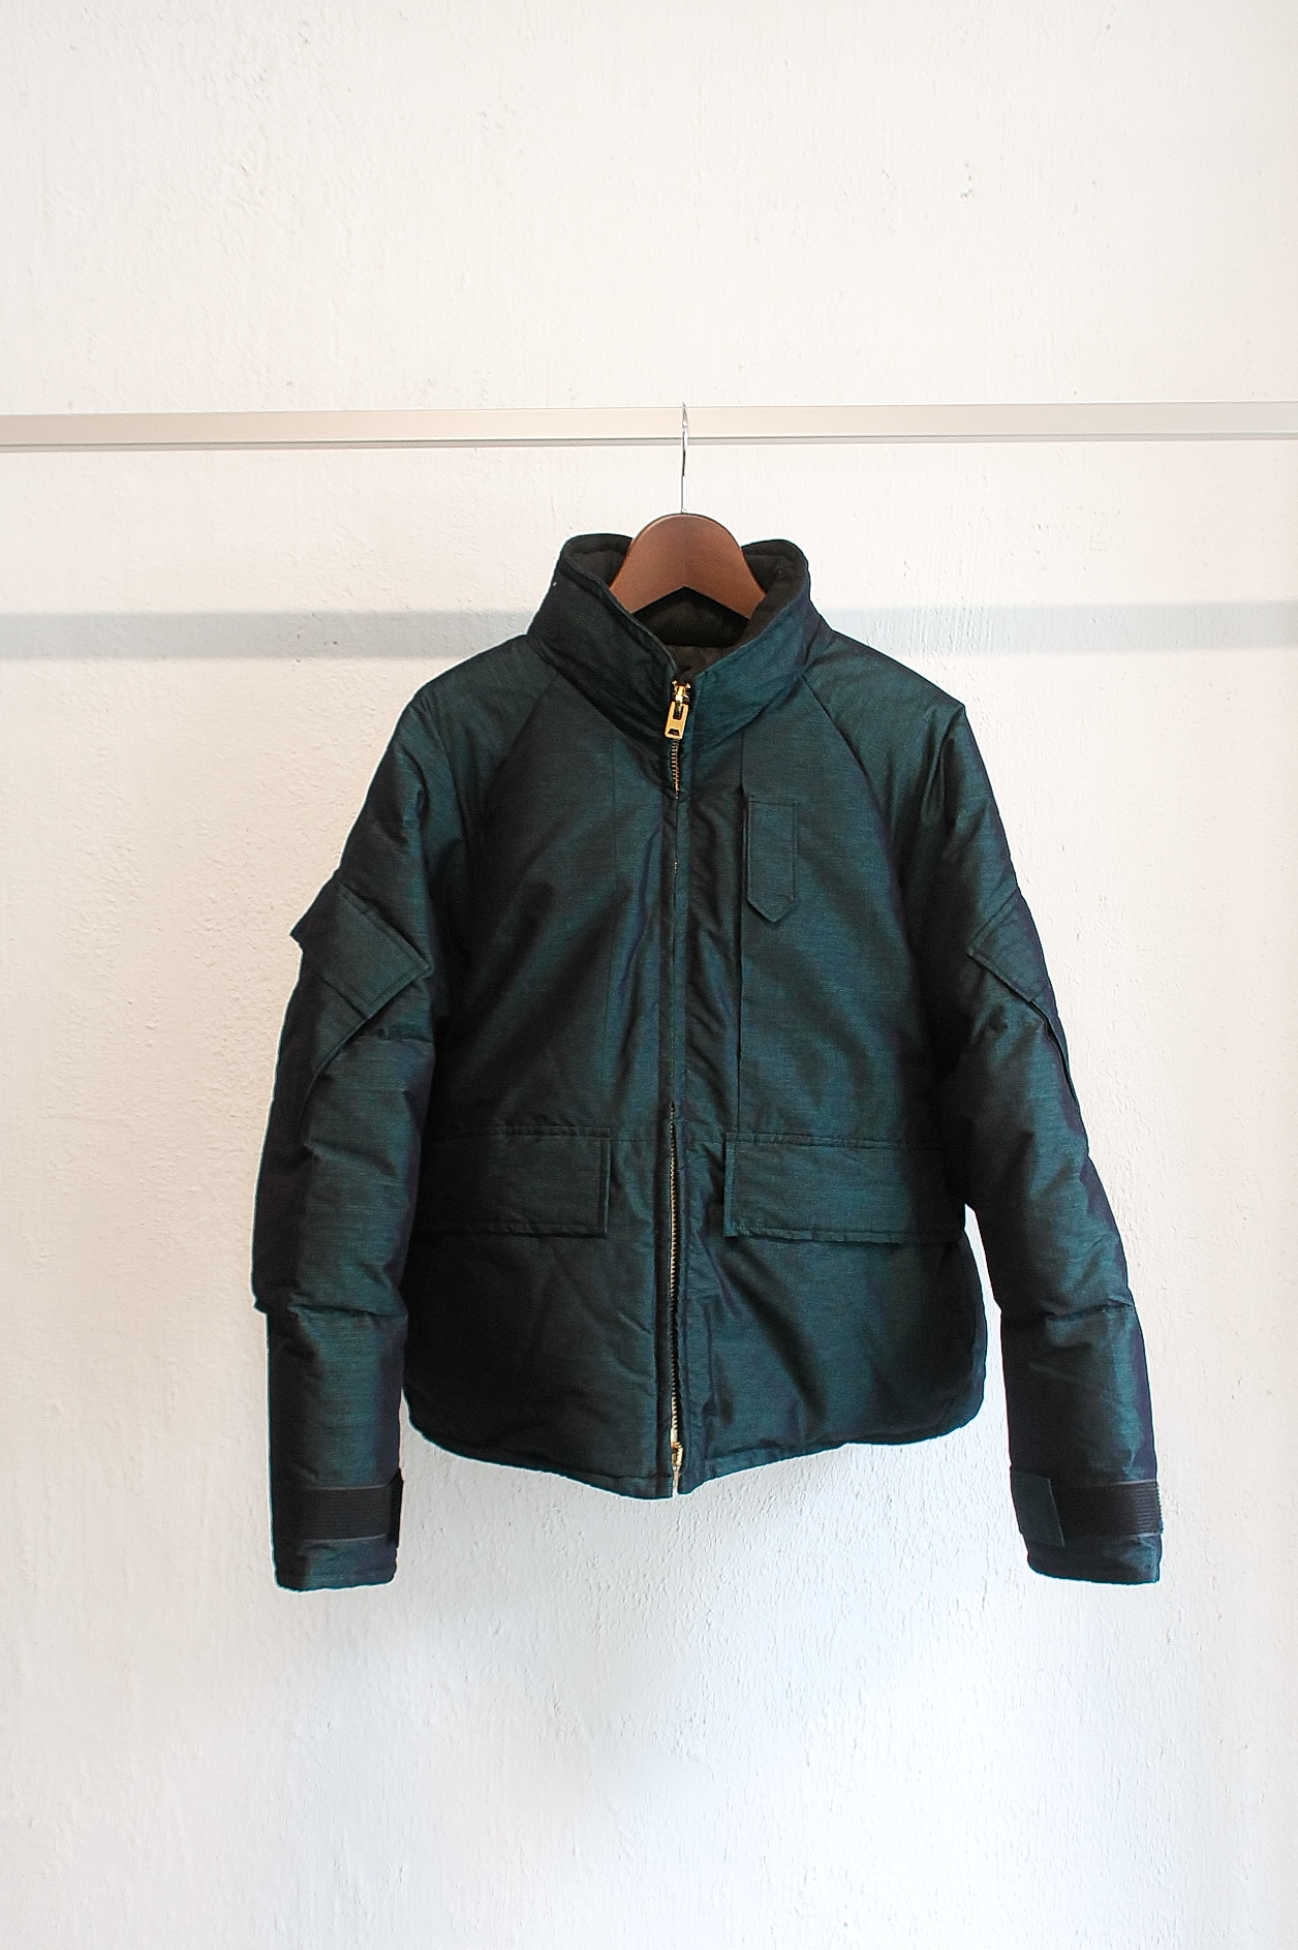 [CLAMP] EXWCS Down Jacket - Green